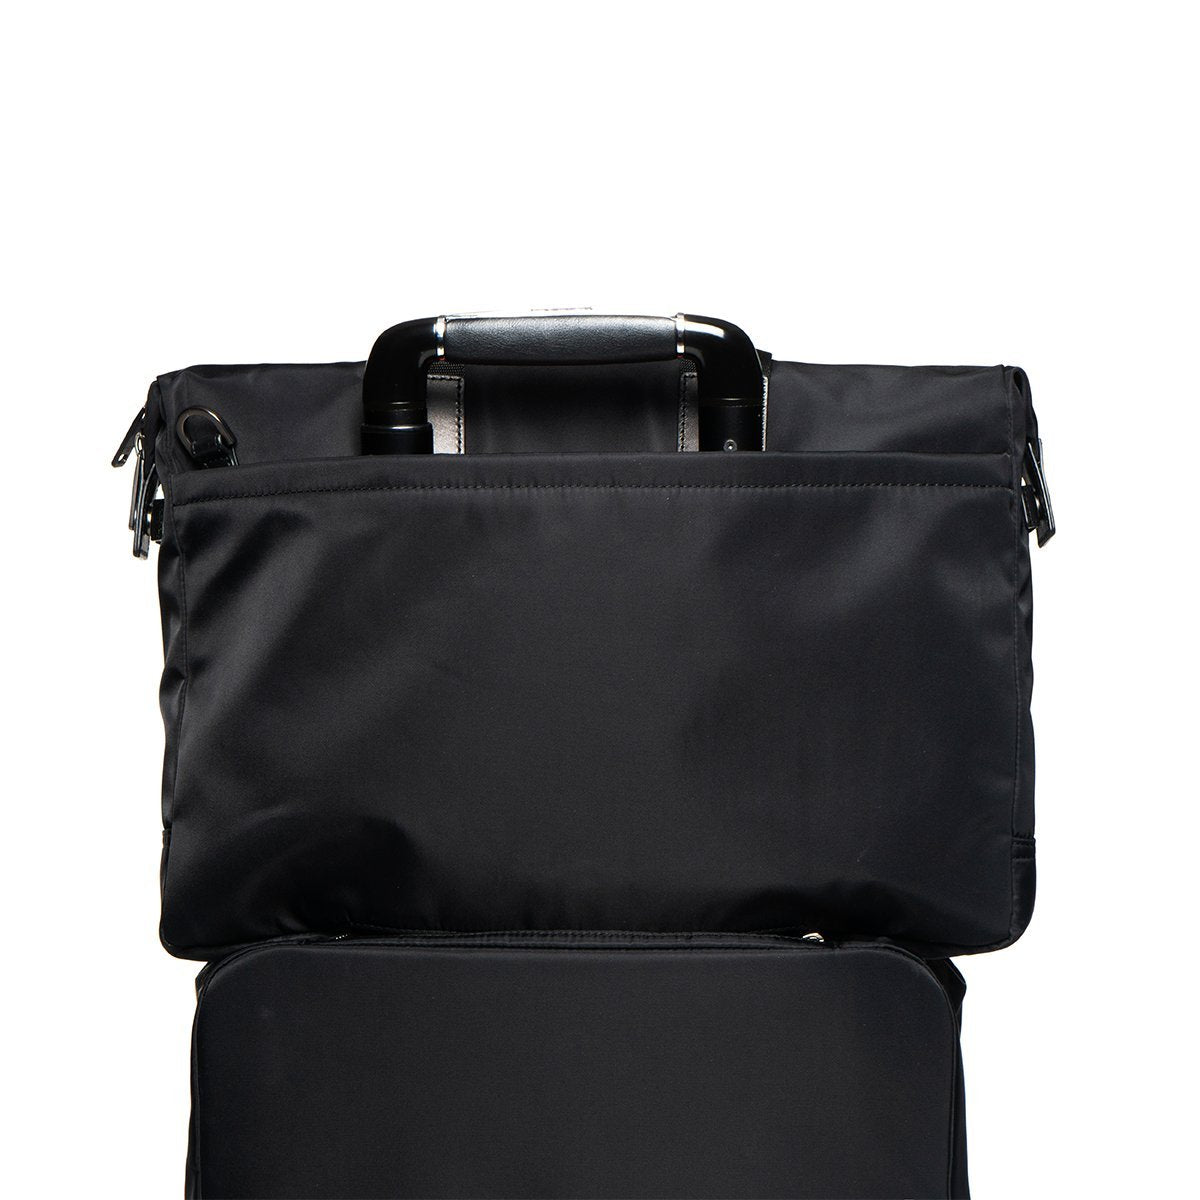 "KNOMO Tournay Laptop Briefcase Trolley Sleeve View 15"" -  Black 